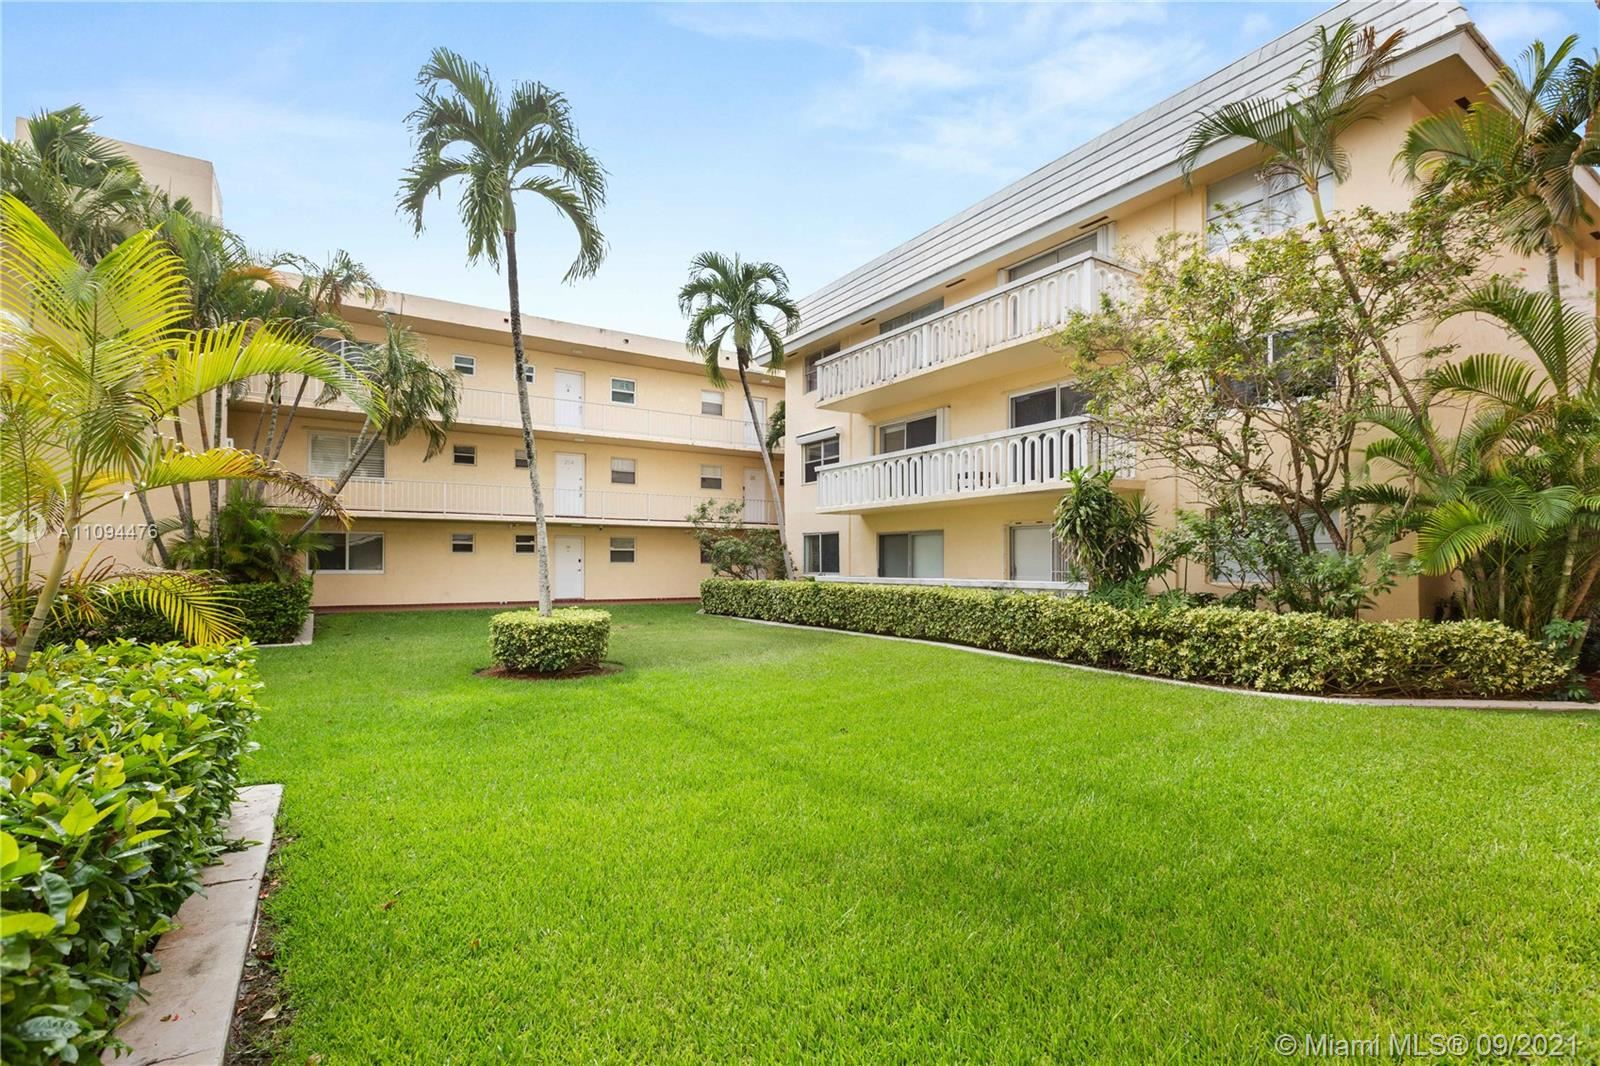 100 Edgewater Dr #112, Coral Gables, FL 33133 - #: A11094476